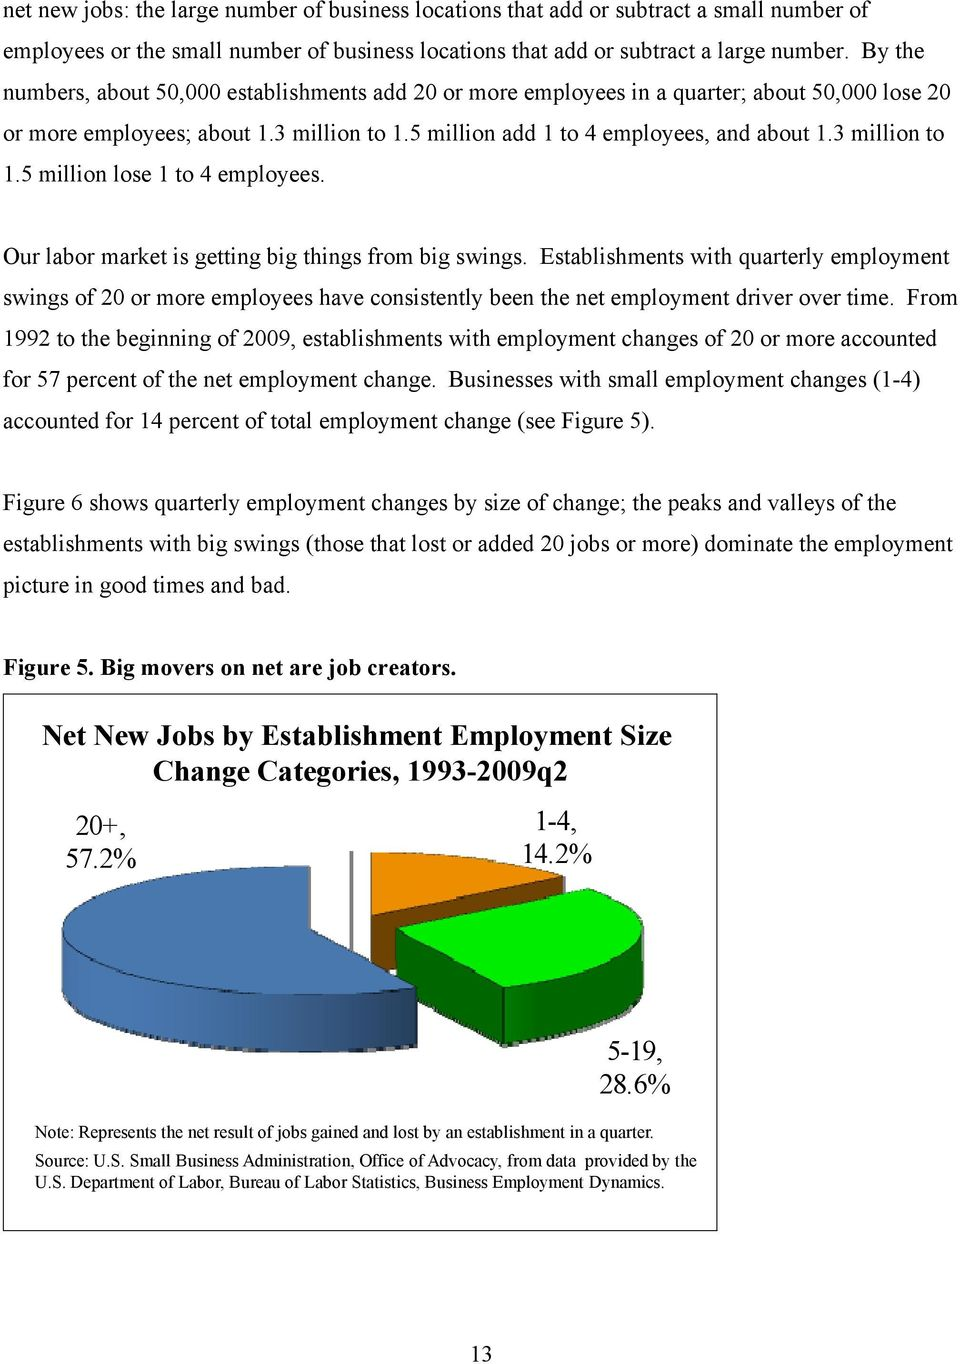 3 million to 1.5 million lose 1 to 4 employees. Our labor market is getting big things from big swings.